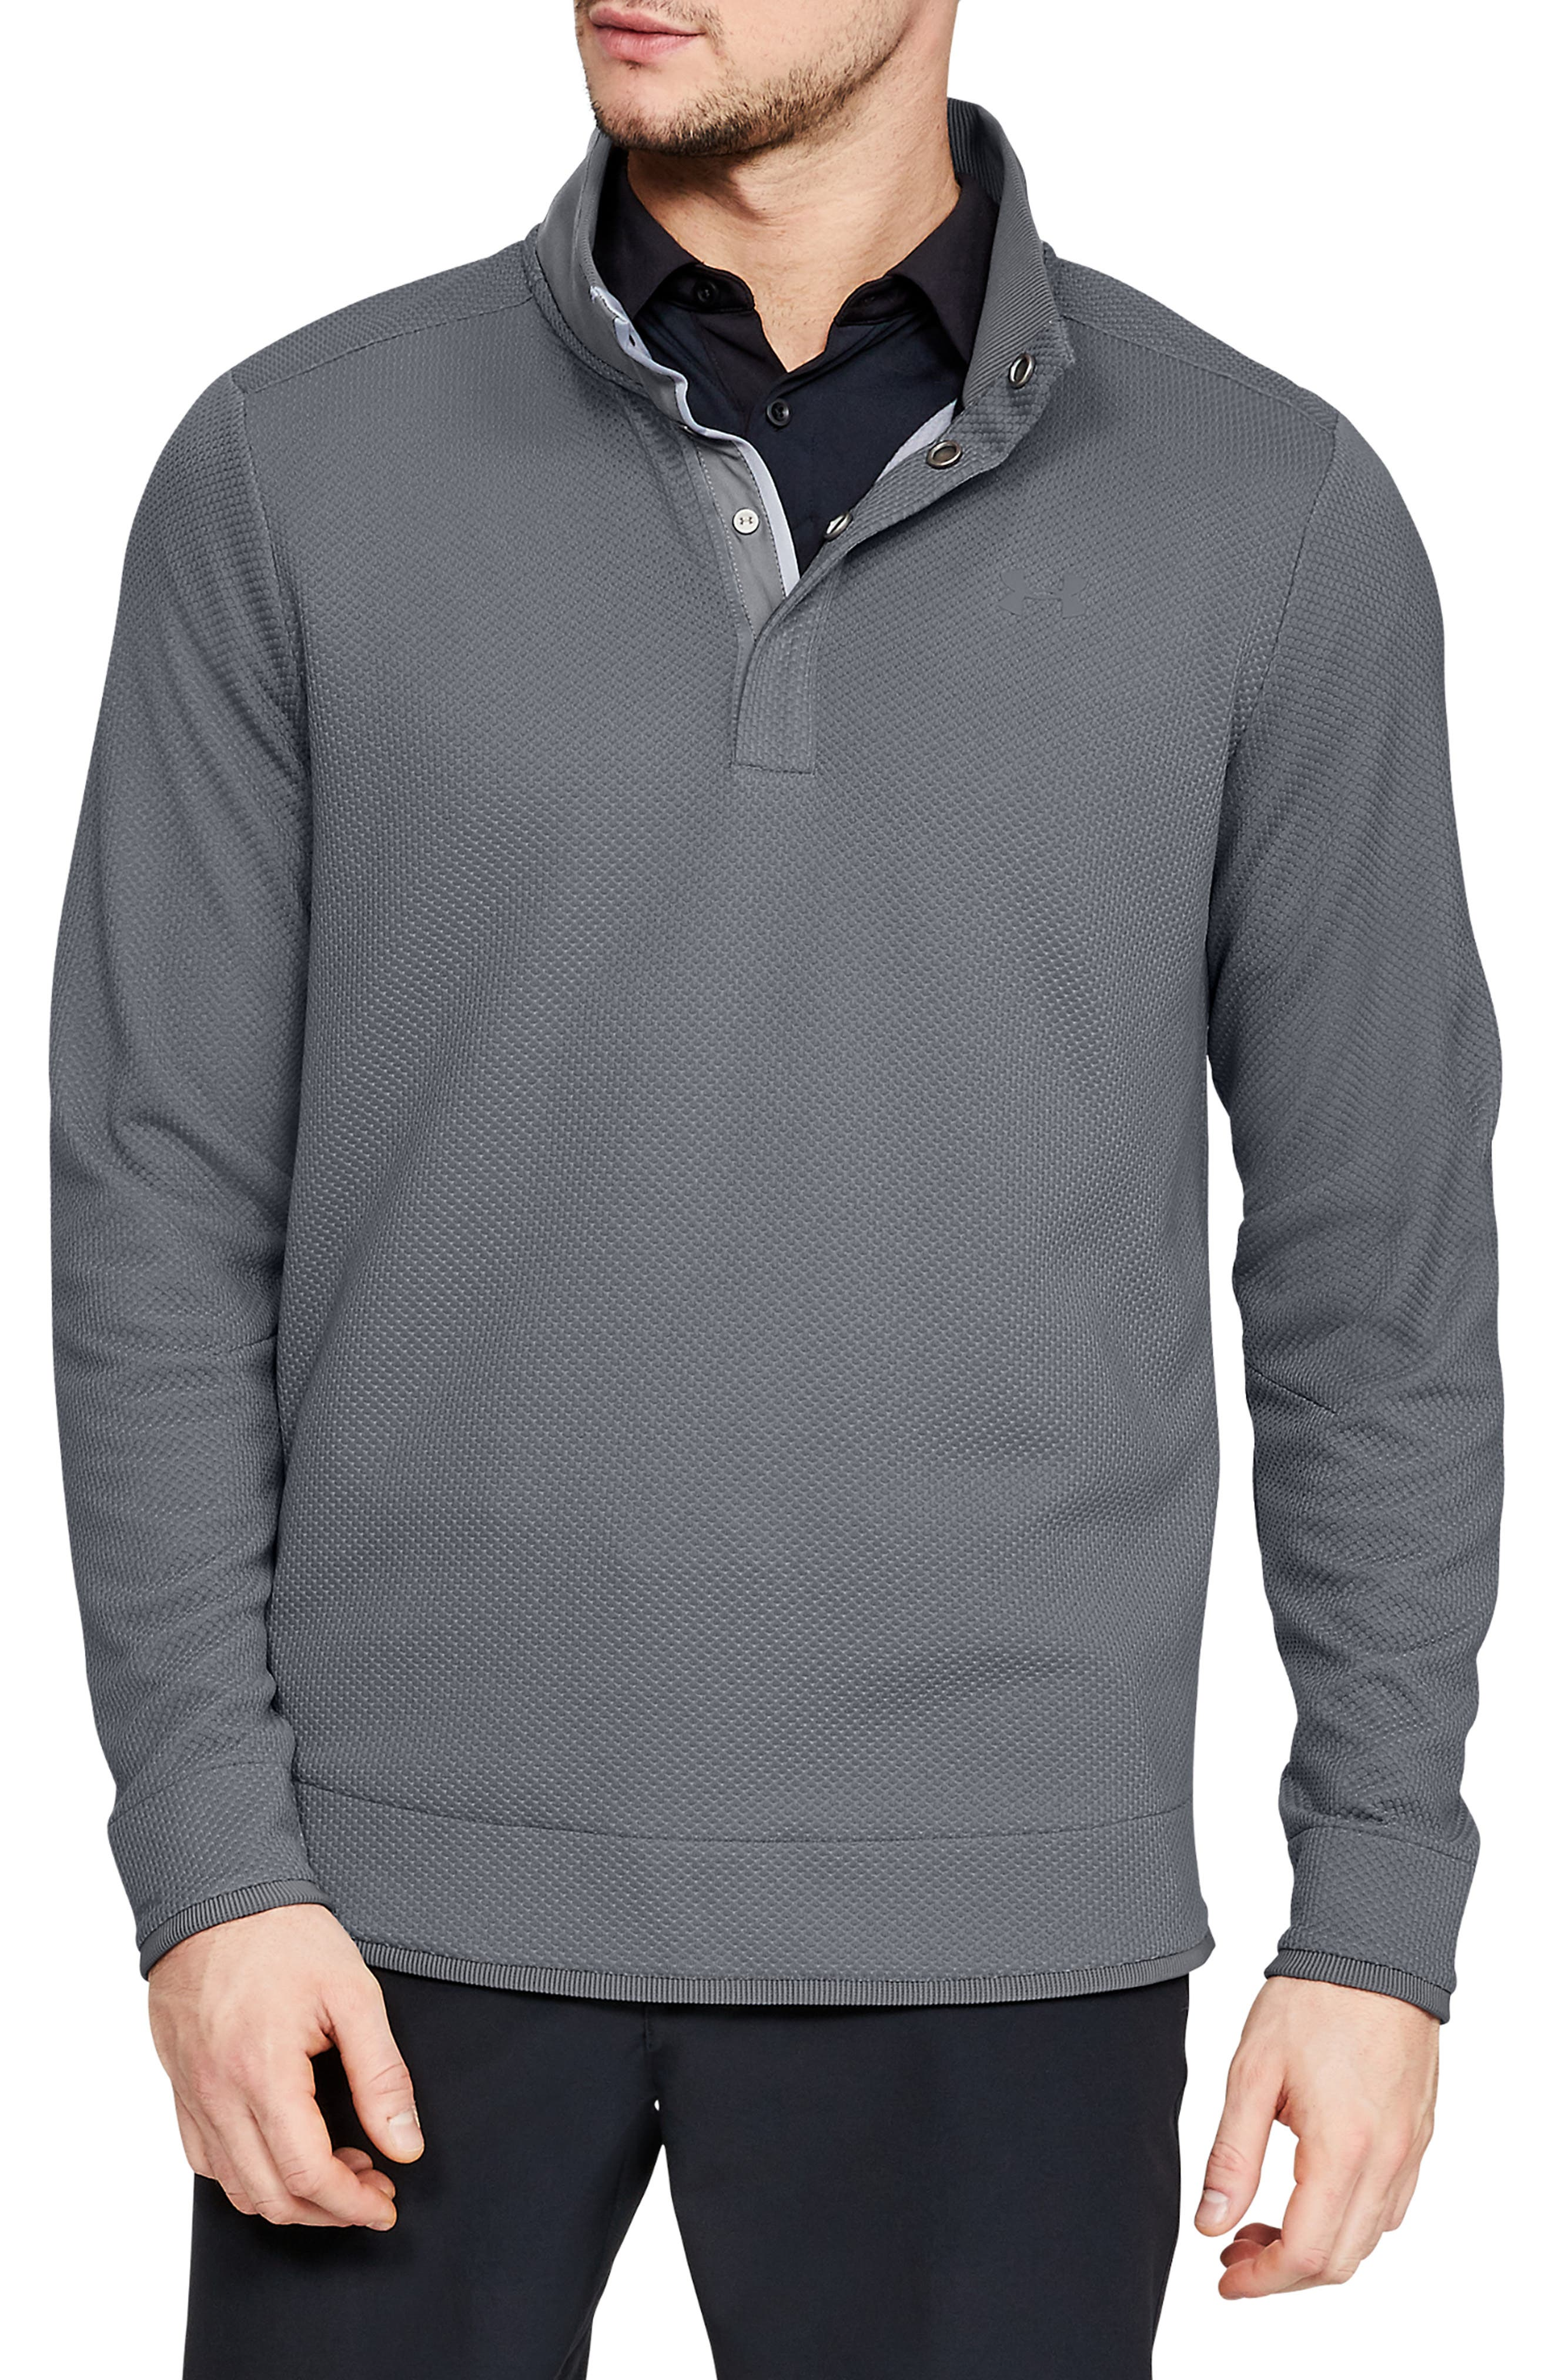 Under Armour Storm Sweaterfleece Snap Mock Neck Pullover